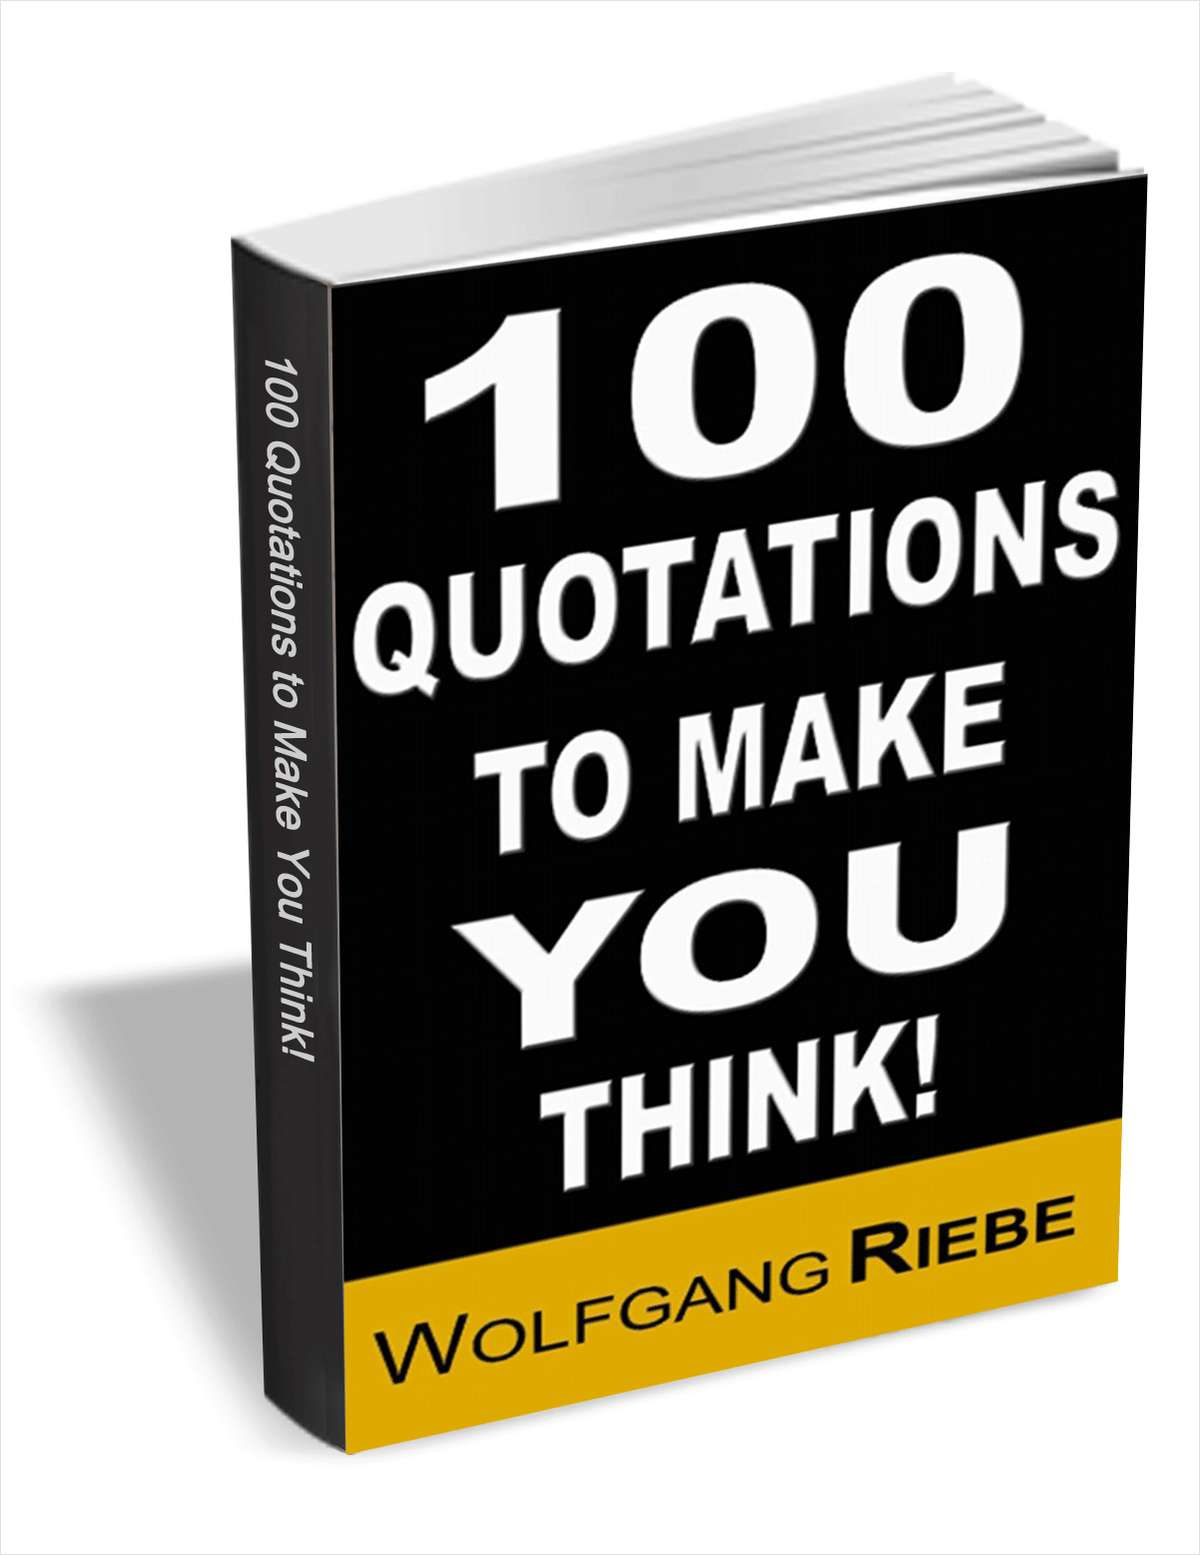 100 Quotations to Make You Think!